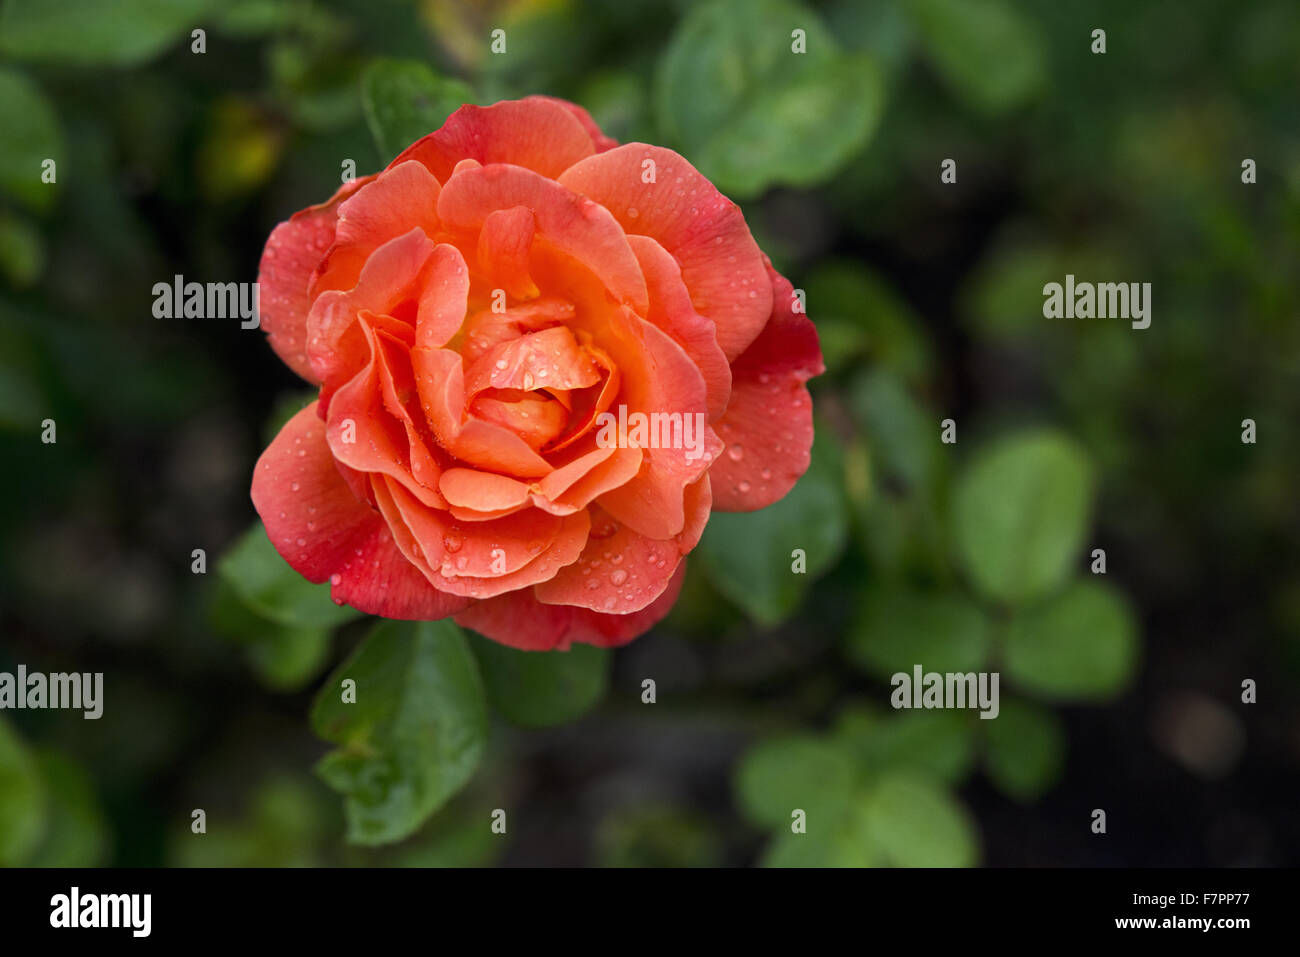 Coral-coloured rose flowering in the garden at Morden Hall Park, London, in July. Stock Photo